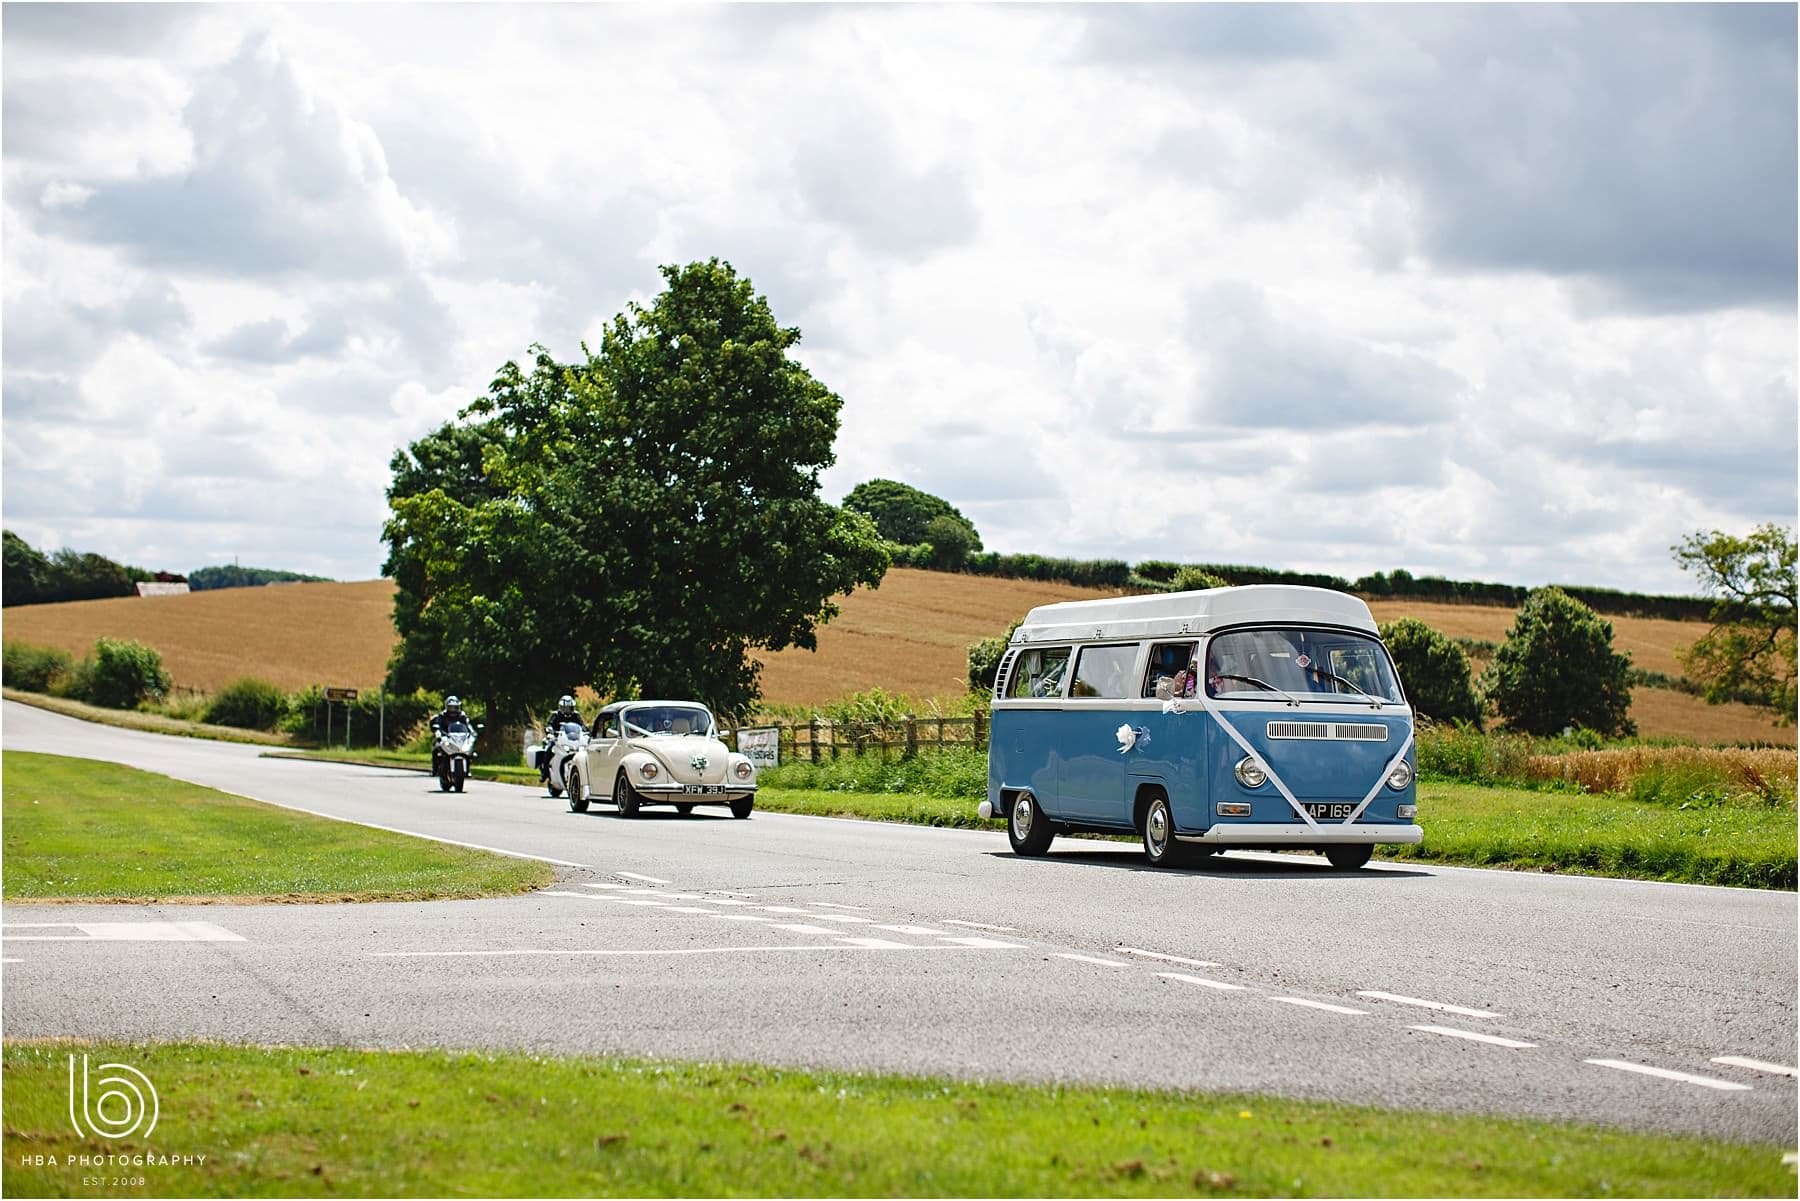 the VW camper arriving at the wedding